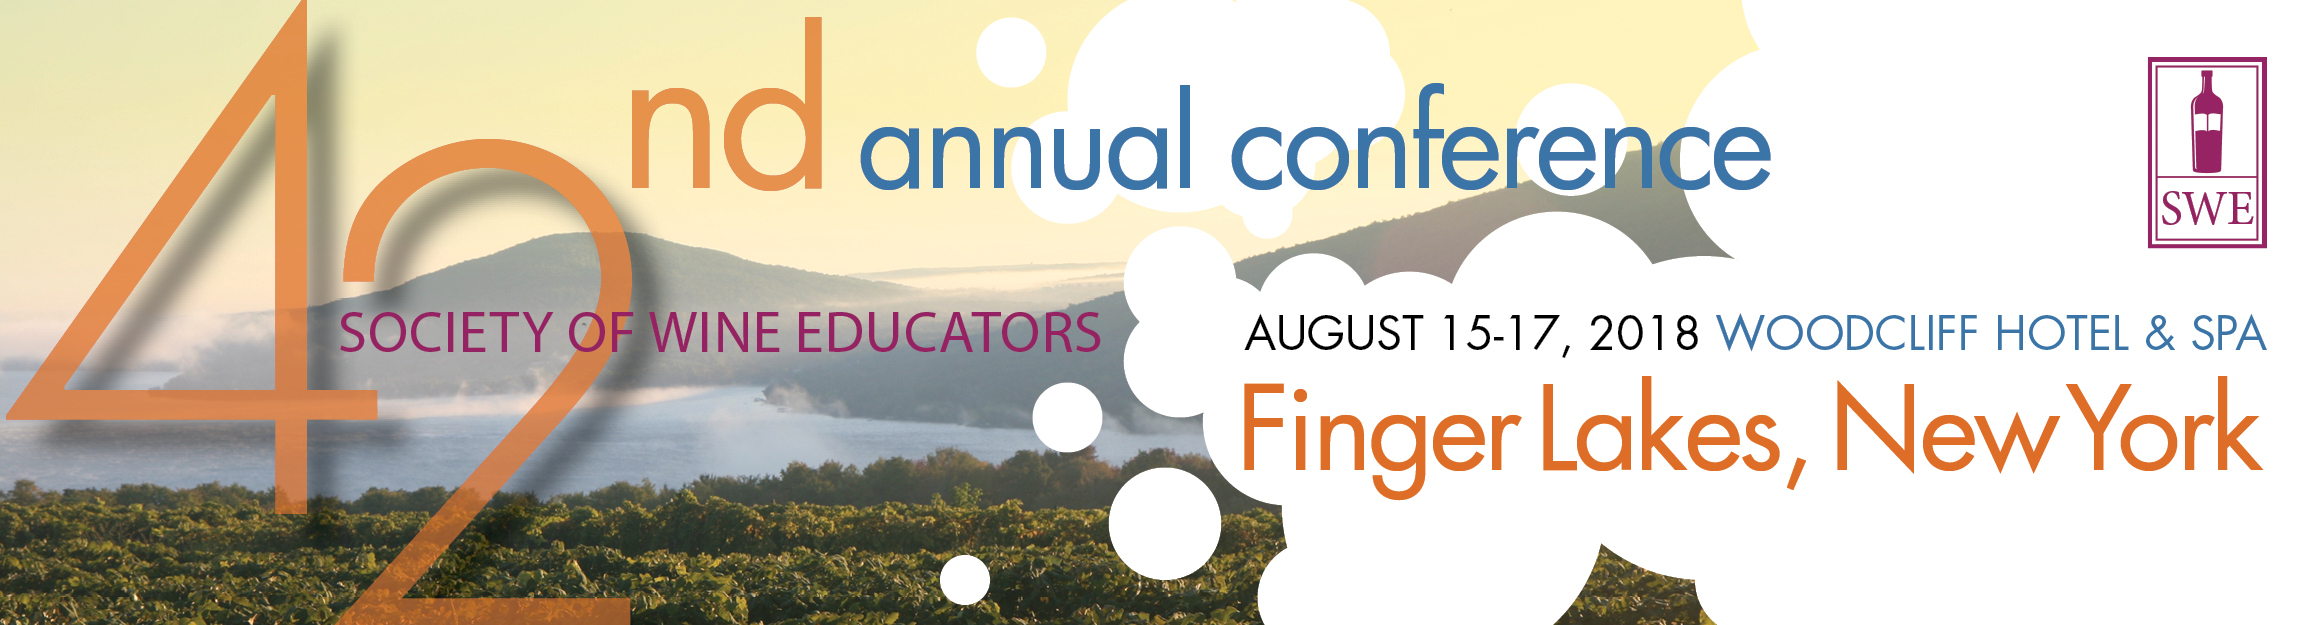 Society of Wine Educators 42nd Annual Conference